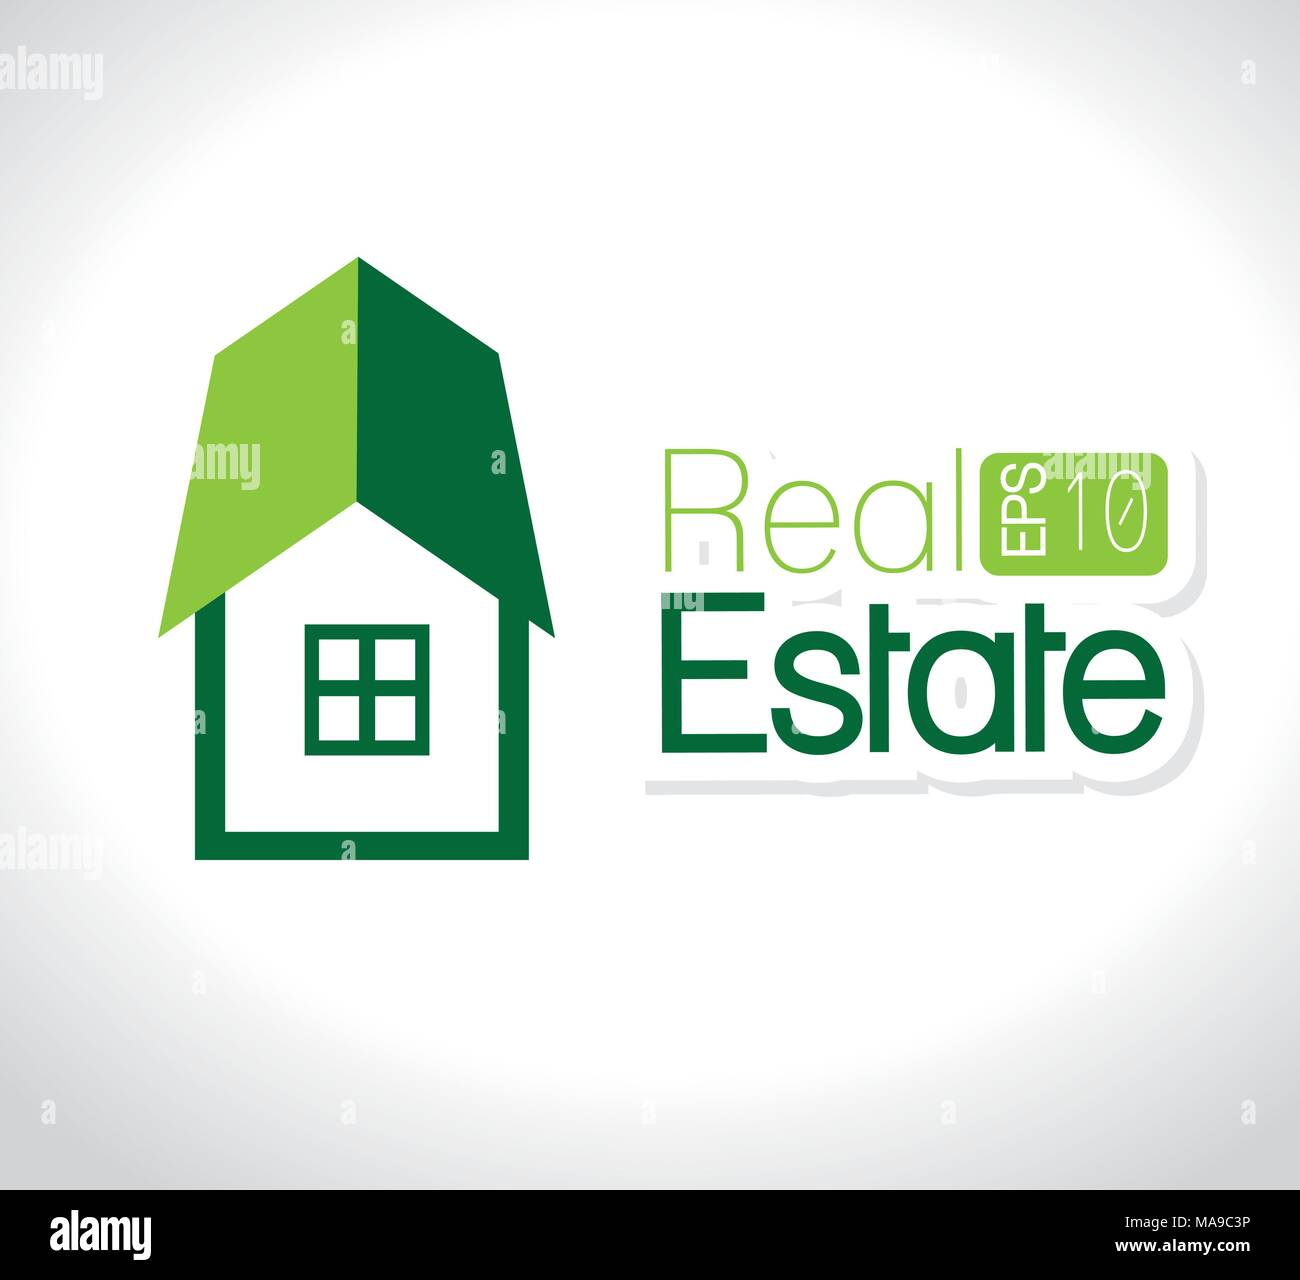 Real estate design. - Stock Vector